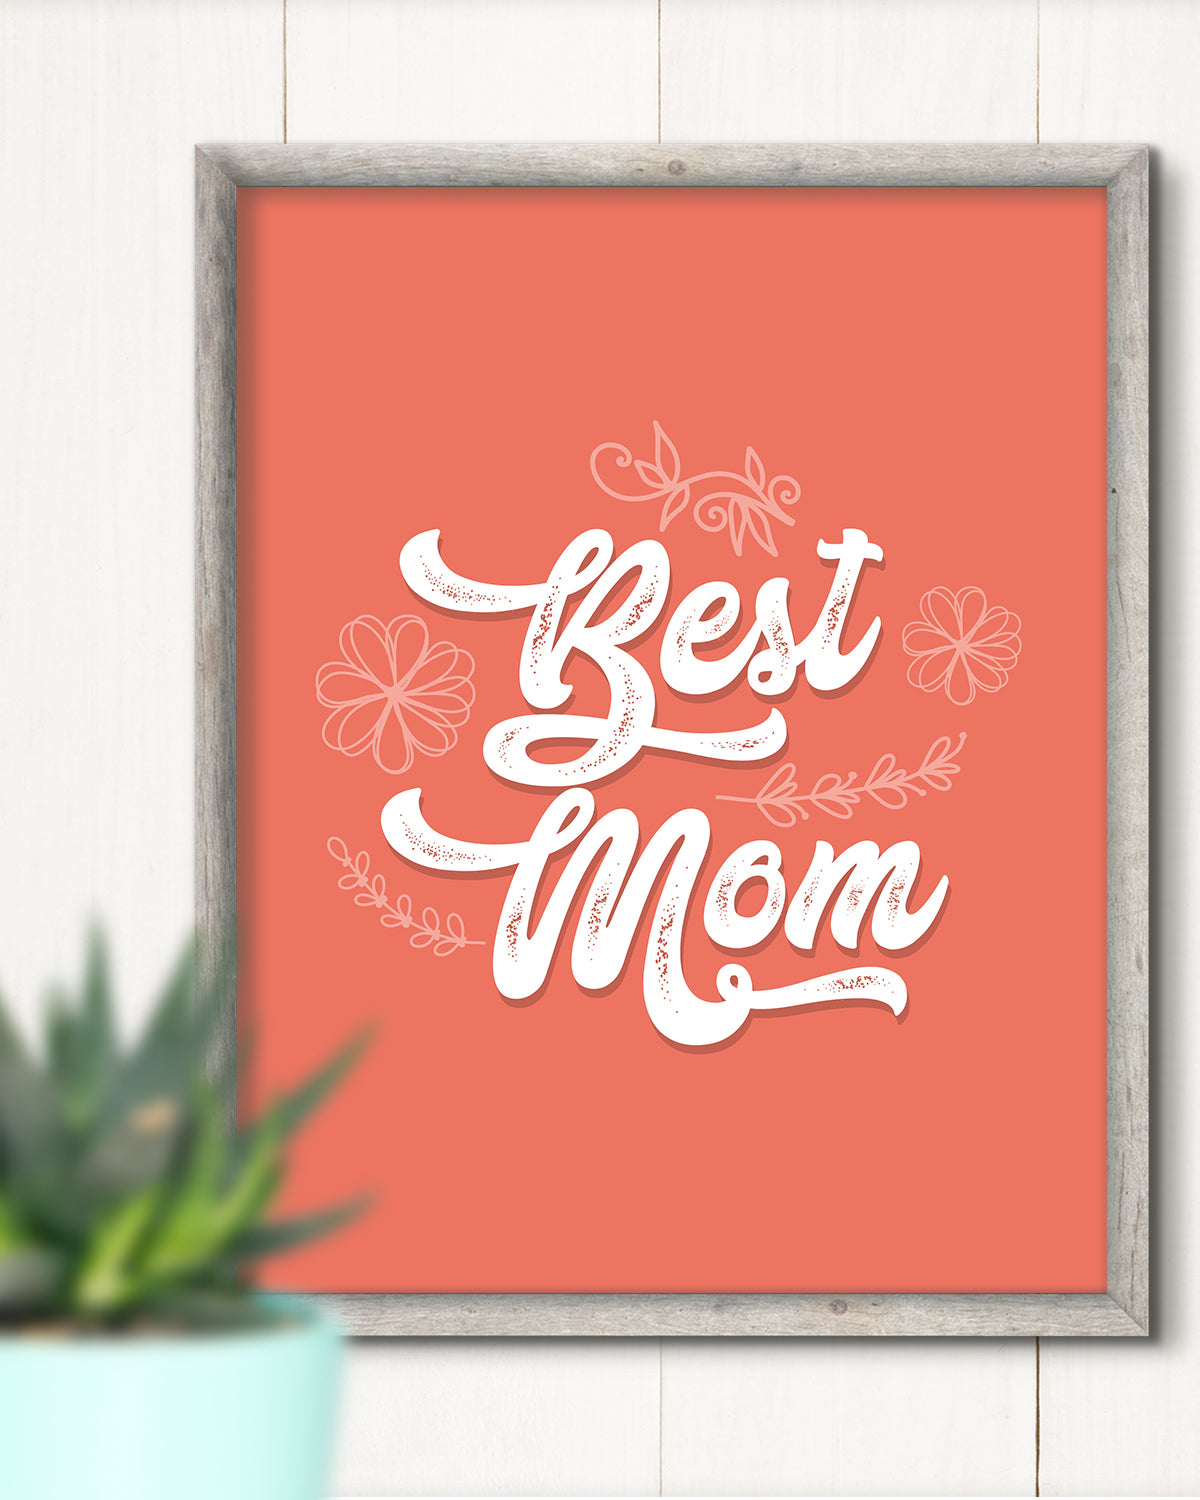 Best Mom - Wall Decor Art Print with Orange background - 8x10 unframed print for mothers